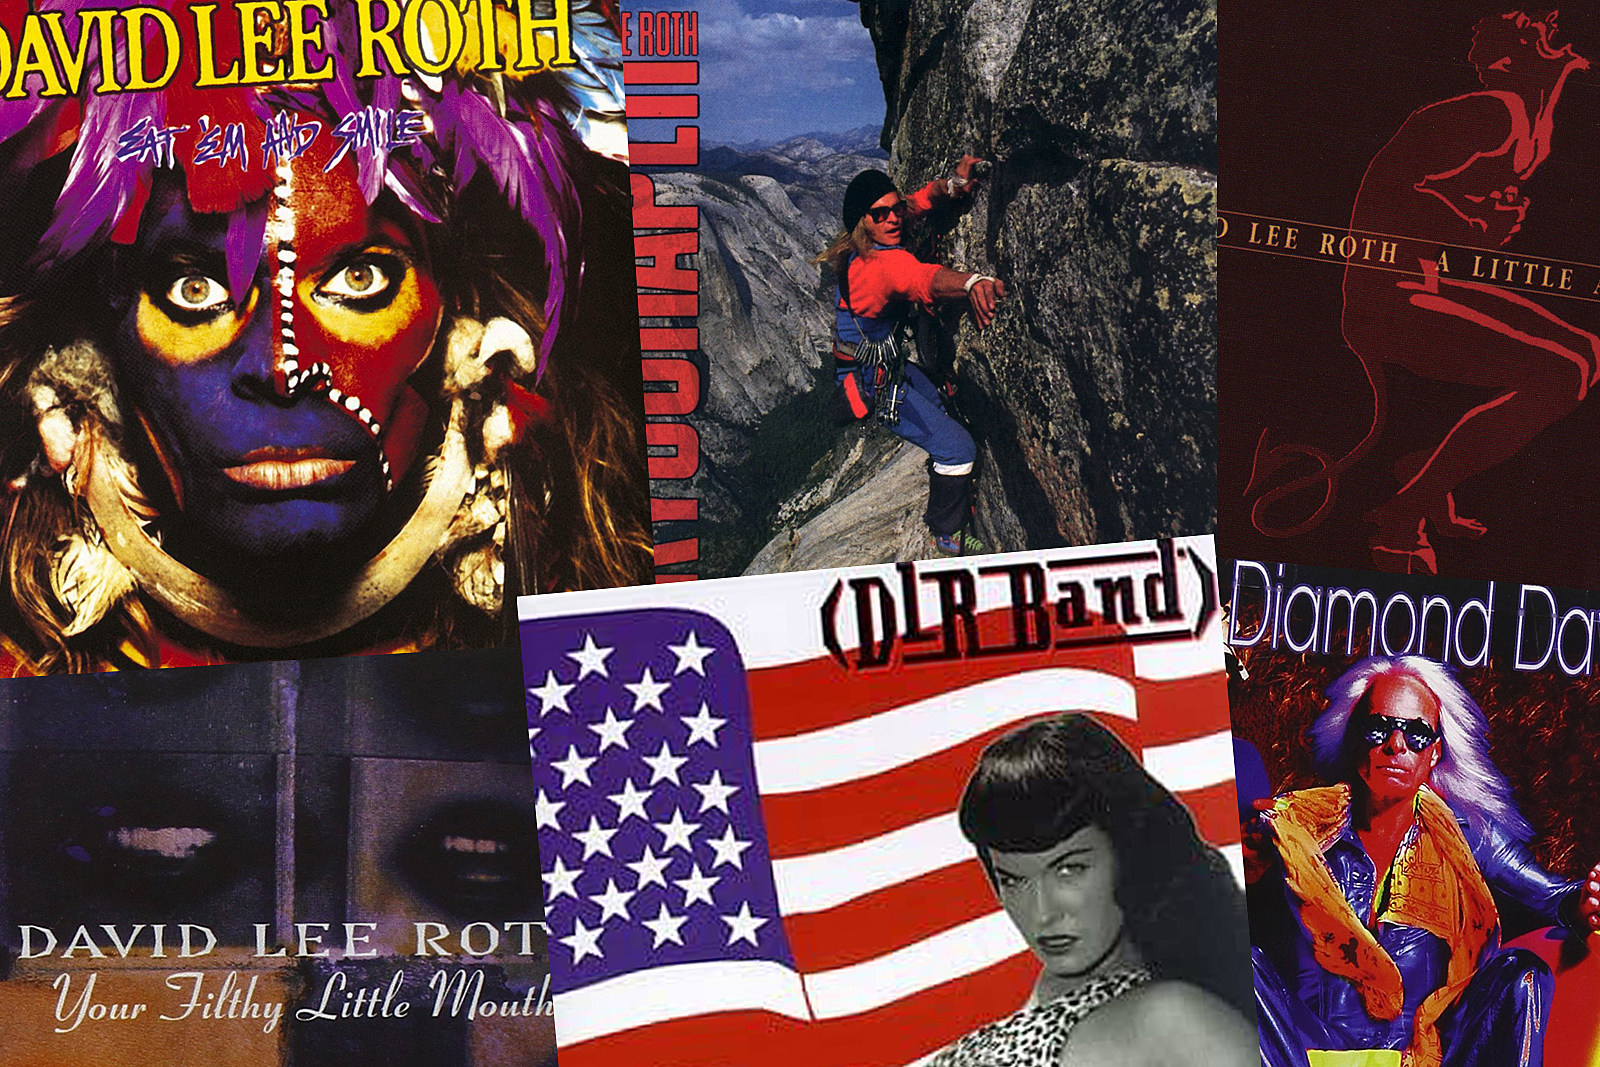 Underrated David Lee Roth: The Most Overlooked Track From Each LP